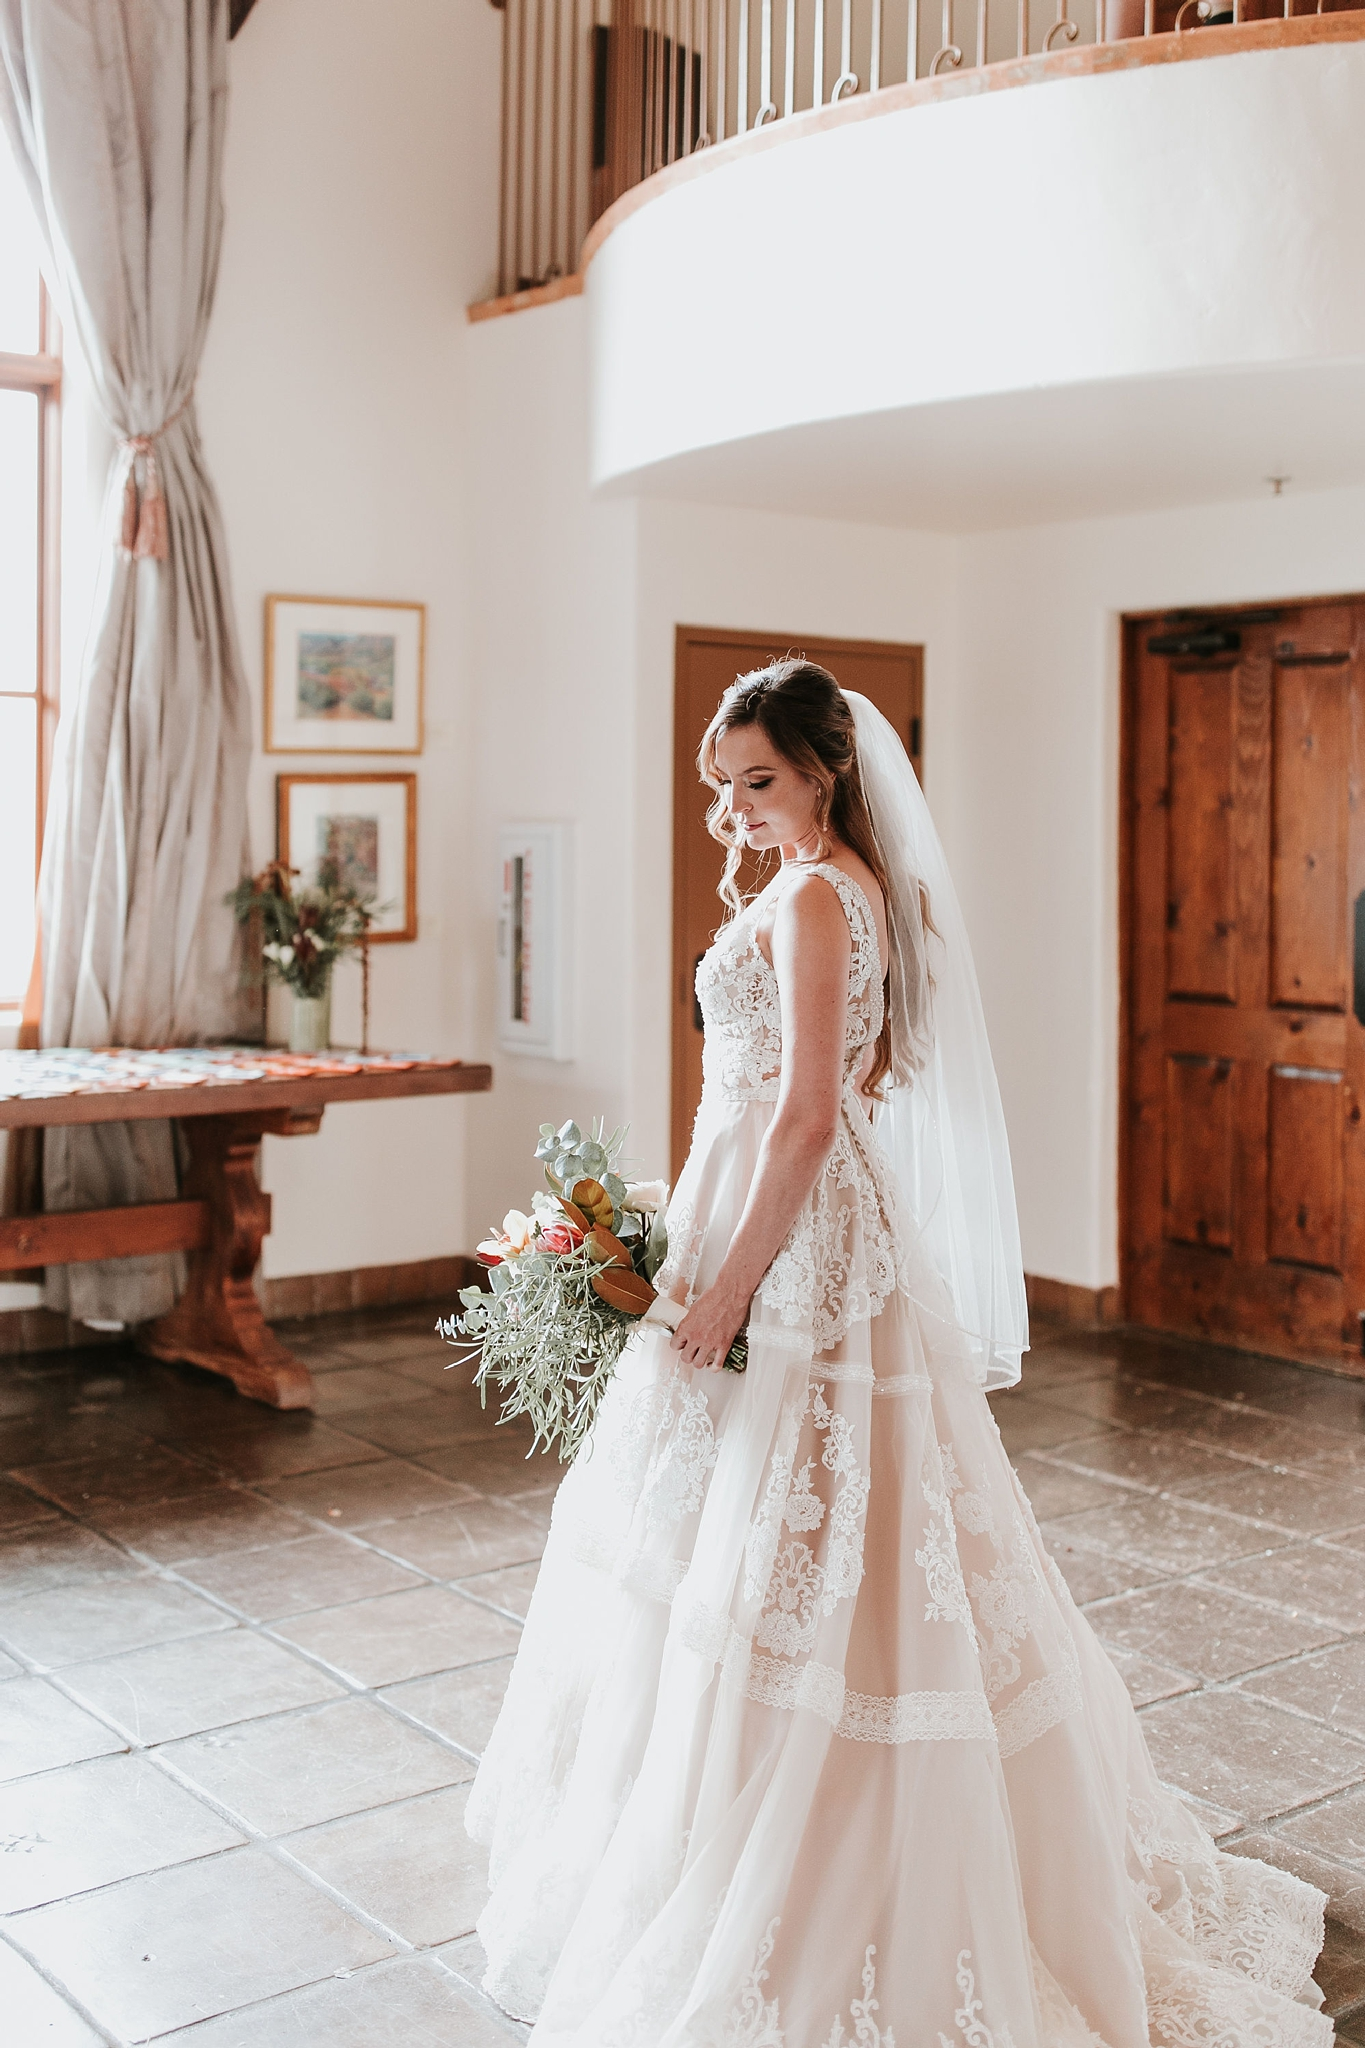 Alicia+lucia+photography+-+albuquerque+wedding+photographer+-+santa+fe+wedding+photography+-+new+mexico+wedding+photographer+-+new+mexico+wedding+-+wedding+makeup+-+makeup+artist+-+wedding+makeup+artist+-+bridal+makeup_0011.jpg